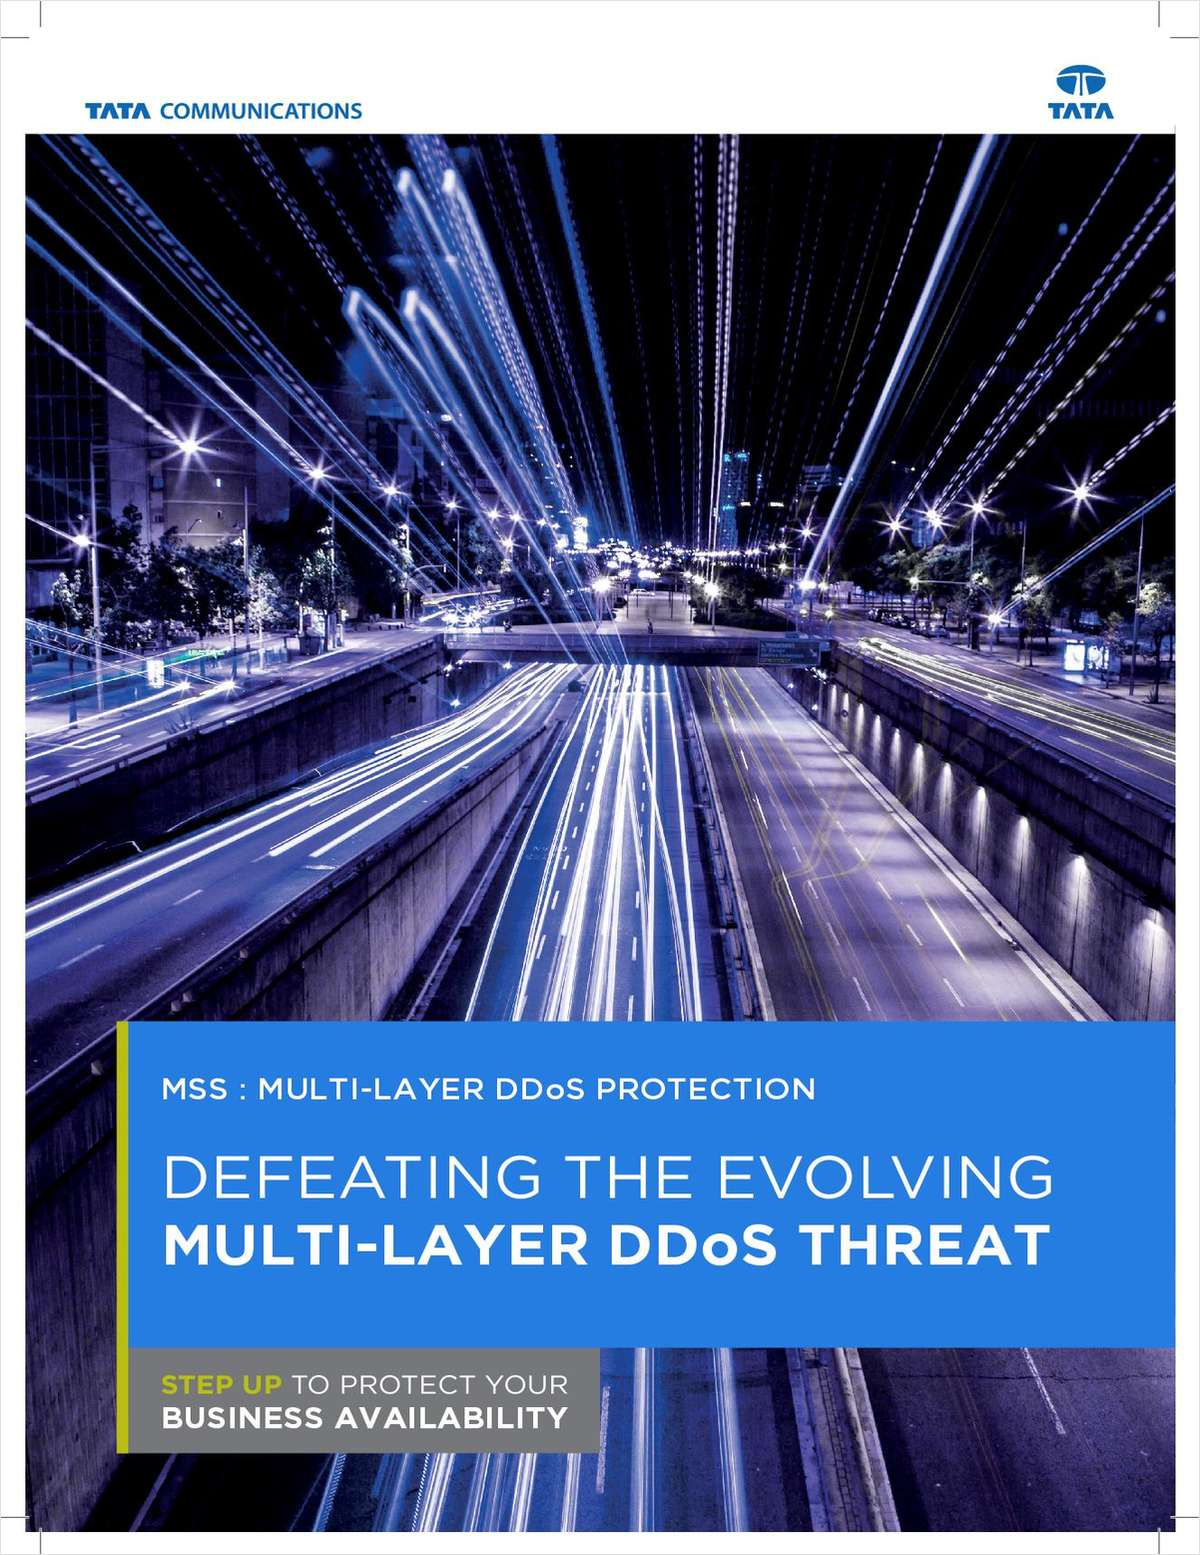 Defeating the Evolving Multi-layer DDoS Threat